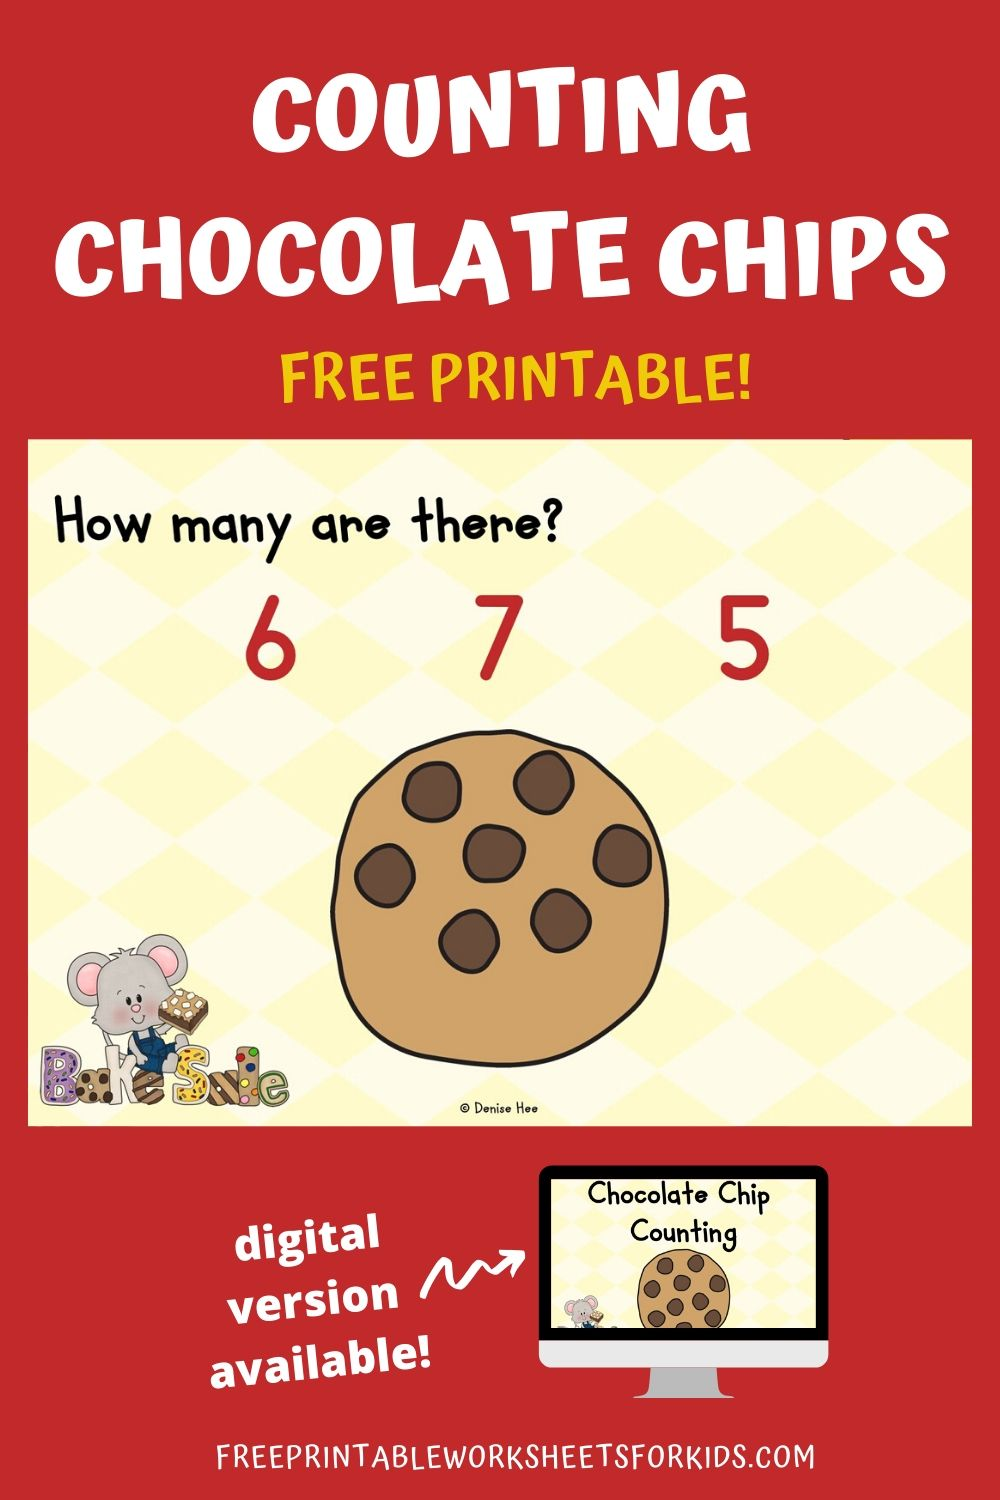 Count The Chocolate Chips 1-10 | Free Printable Worksheets For Kids | Kids will love this deliciously fun counting game! Count out the chocolate chips from 1-10 and clip a wooden peg on the correct answer. This printable game works on both math and fine motor skills. Other Printable Food-Themed Centers and Worksheets Fruit and Vegetable Activity Pack - 5 activities in this pack including shadow matching, bingo, etc. Watermelon Number Puzzles - Work on number recognition and subitizing in this summer-themed game. Farmers Market Activity Pack - helps kids learn about eating a rainbow of healthy foods. Counting Clip Cards Setup For this activity you will need: Paper Printer Wooden pegs or clothespins Optional: laminator If you don't have the materials needed, don't sweat! You can get it delivered to your doorstep really quickly with Amazon Prime. You can get a 30-day free trial here.  Playing This Fun Counting Game Print out the pages and cut them as needed into individual clip cards. I would suggest laminating them so you can use them again and again. Lay out the cards with some wooden pegs and that's it! Your kids are now ready for some fun math :) Additionally, you could provide some small tokens or counters that your student can use to help them count. They can place a counter over each worm to avoid counting them twice by mistake and to reinforce one to one correspondence. I have a large collection of Spring and Summer Counting Clip Cards. You can find more to complement this activity here. Pair Up This Food Themed Math Activity Looking for more food themed printable math and literacy activities? Check out my pack of 10 Fruit and Vegetables Themed Centers here. Looking for more printable math and literacy activities for Summer? Check out my pack of 10 Ice Cream Themed Centers here. Looking for digital task cards? If you're using digital task cards in your classroom, you can find the Boom Cards version of this game in my Boom Learning shop (under Kool Kids Games) or in my Teachers Pay Teachers store.